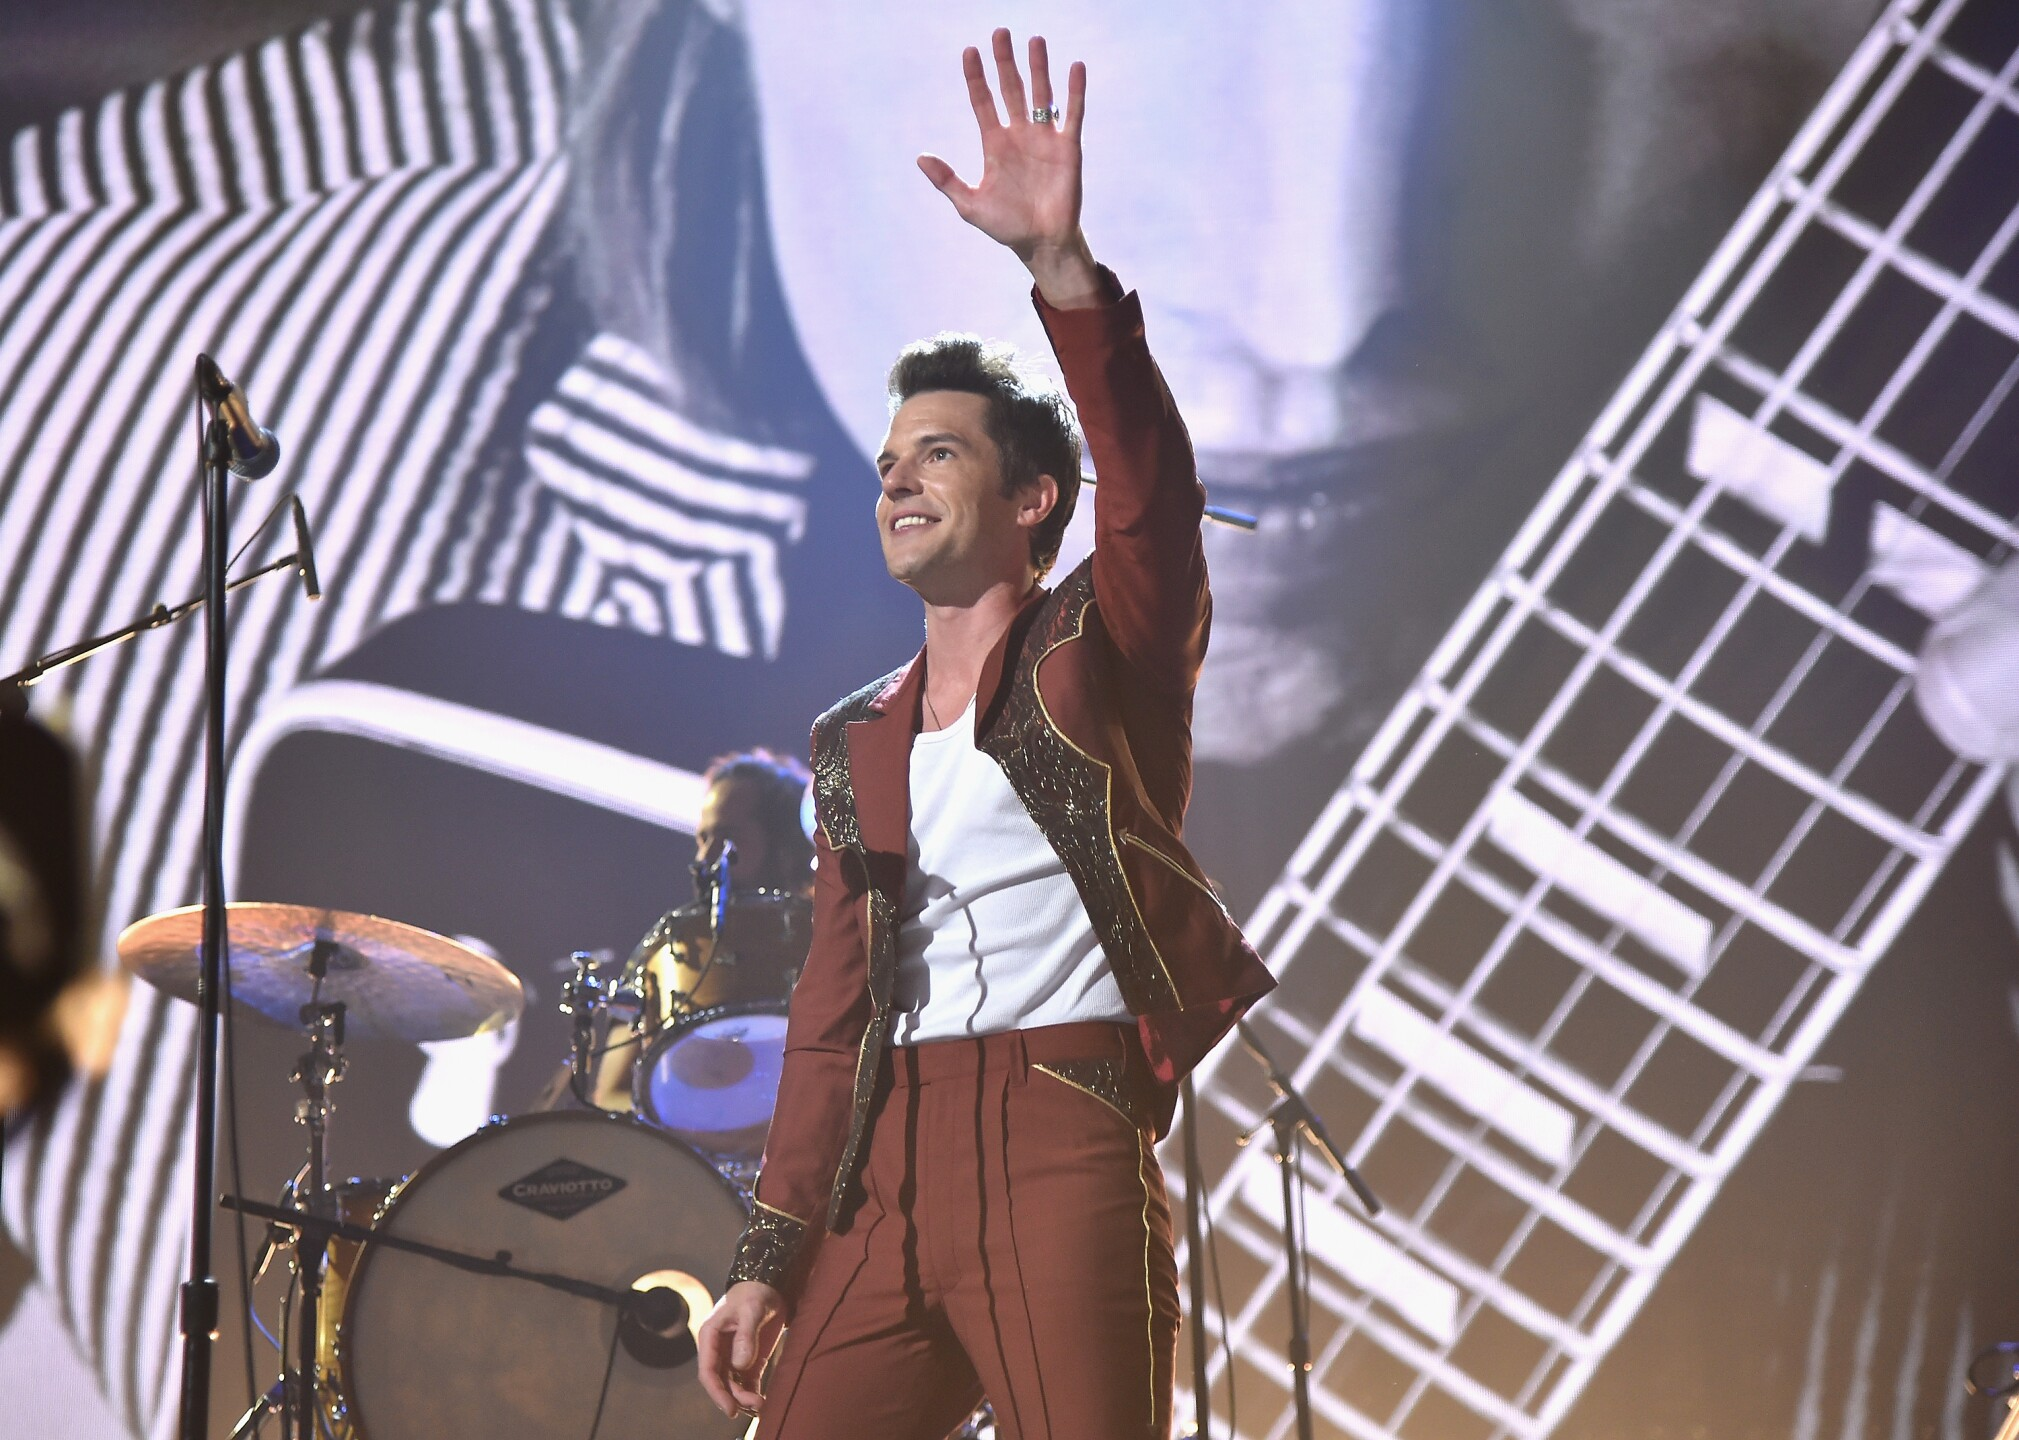 The Killers to perform July 5 at Summerfest